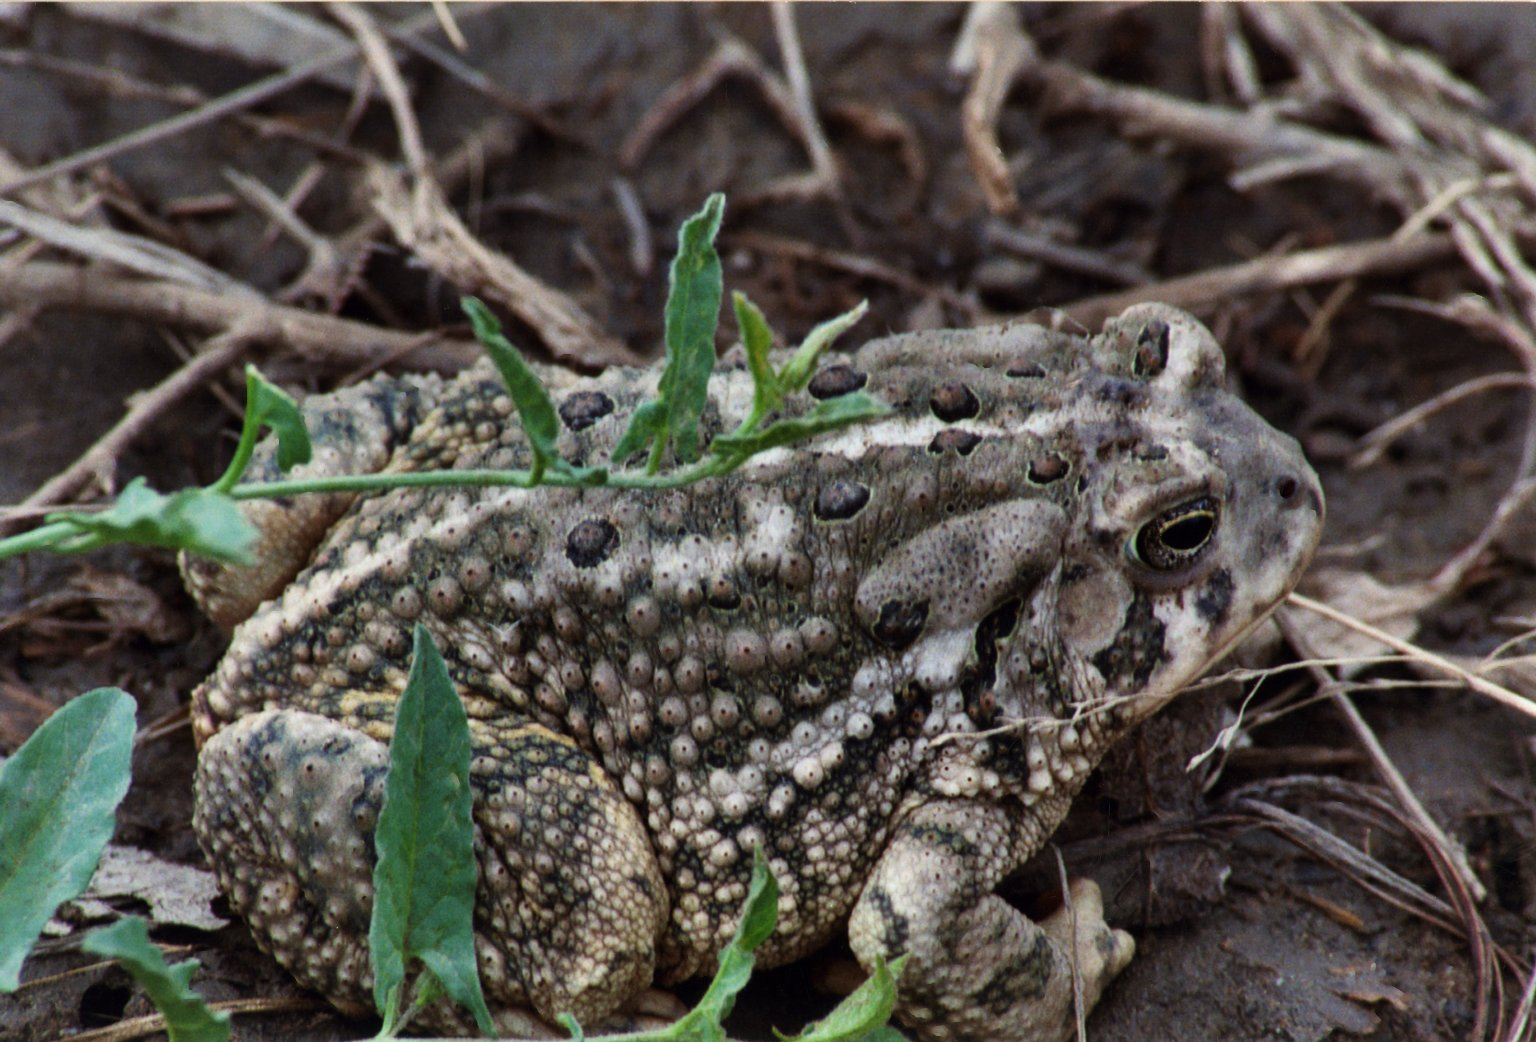 Close up of unidenitified frog or toad